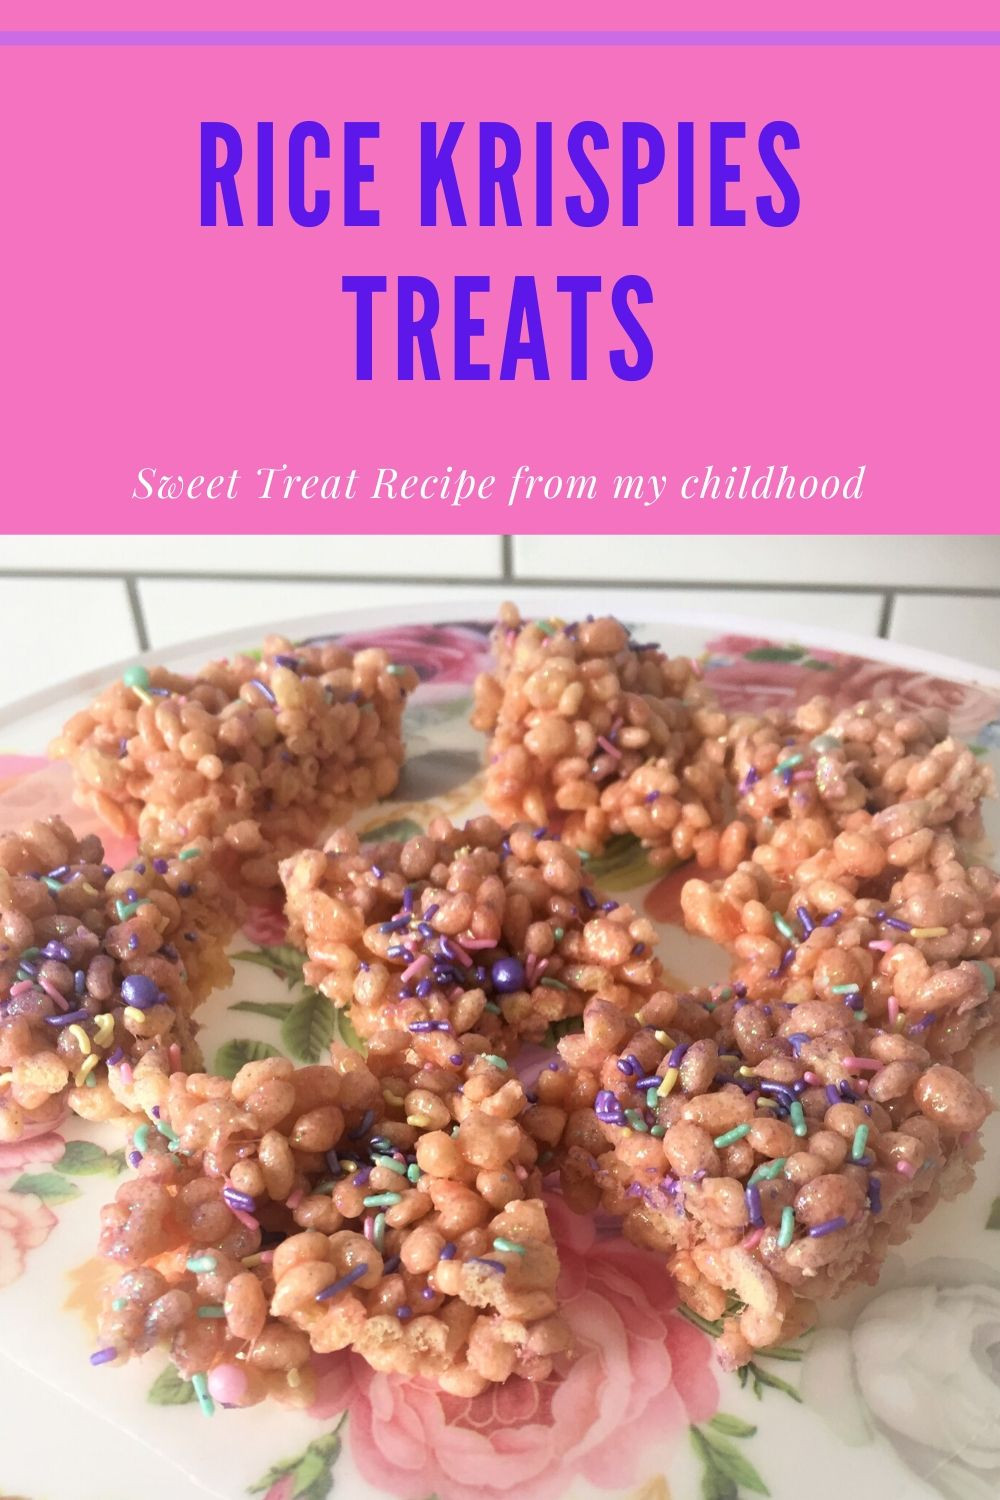 Easy recipe to make Rice Krispies Treats. Simple and easy to make with children. Just need Rice Krispies and Marchmallows.